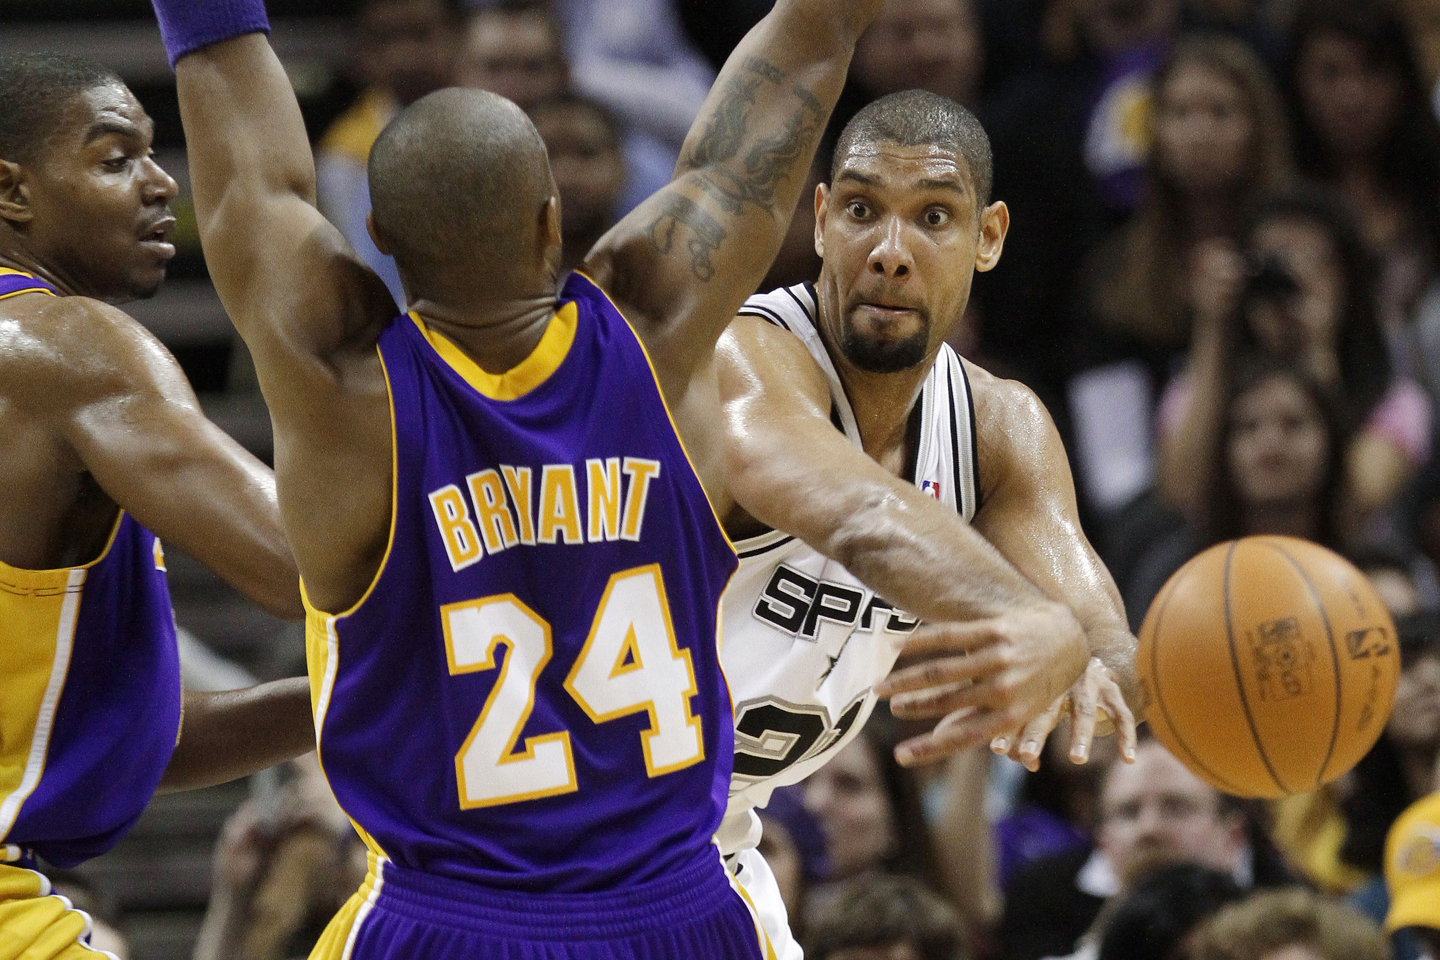 San Antonio Spurs' Tim Duncan, right, passes the ball around Los Angeles Lakers' Kobe Bryant (24) and Andrew Bynum during the third quarter of an NBA basketball game Tuesday, Jan. 12, 2010, in San Antonio. San Antonio won 105-85.